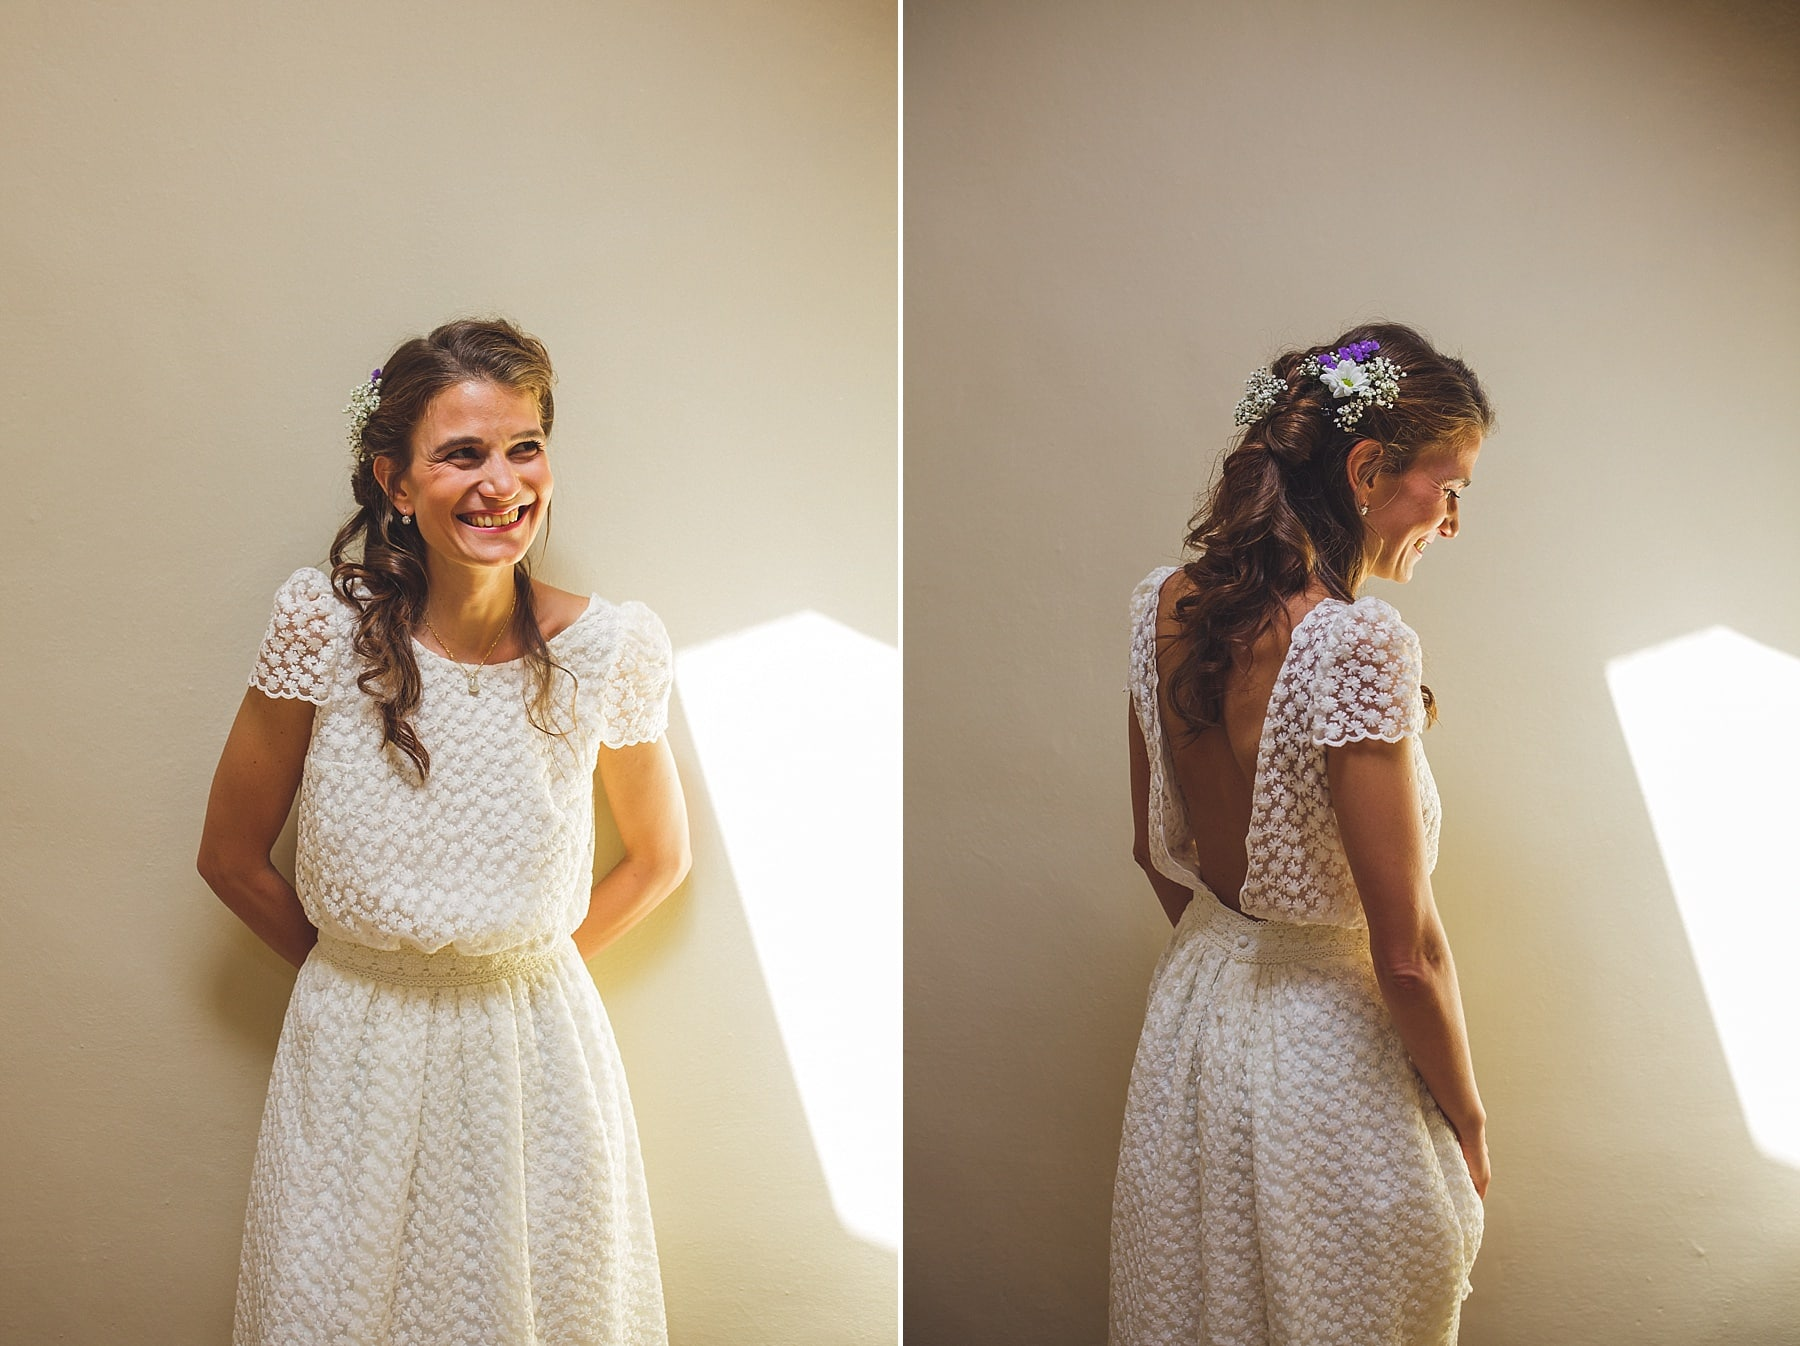 Italian Bride,Sienna Wedding Photographer,